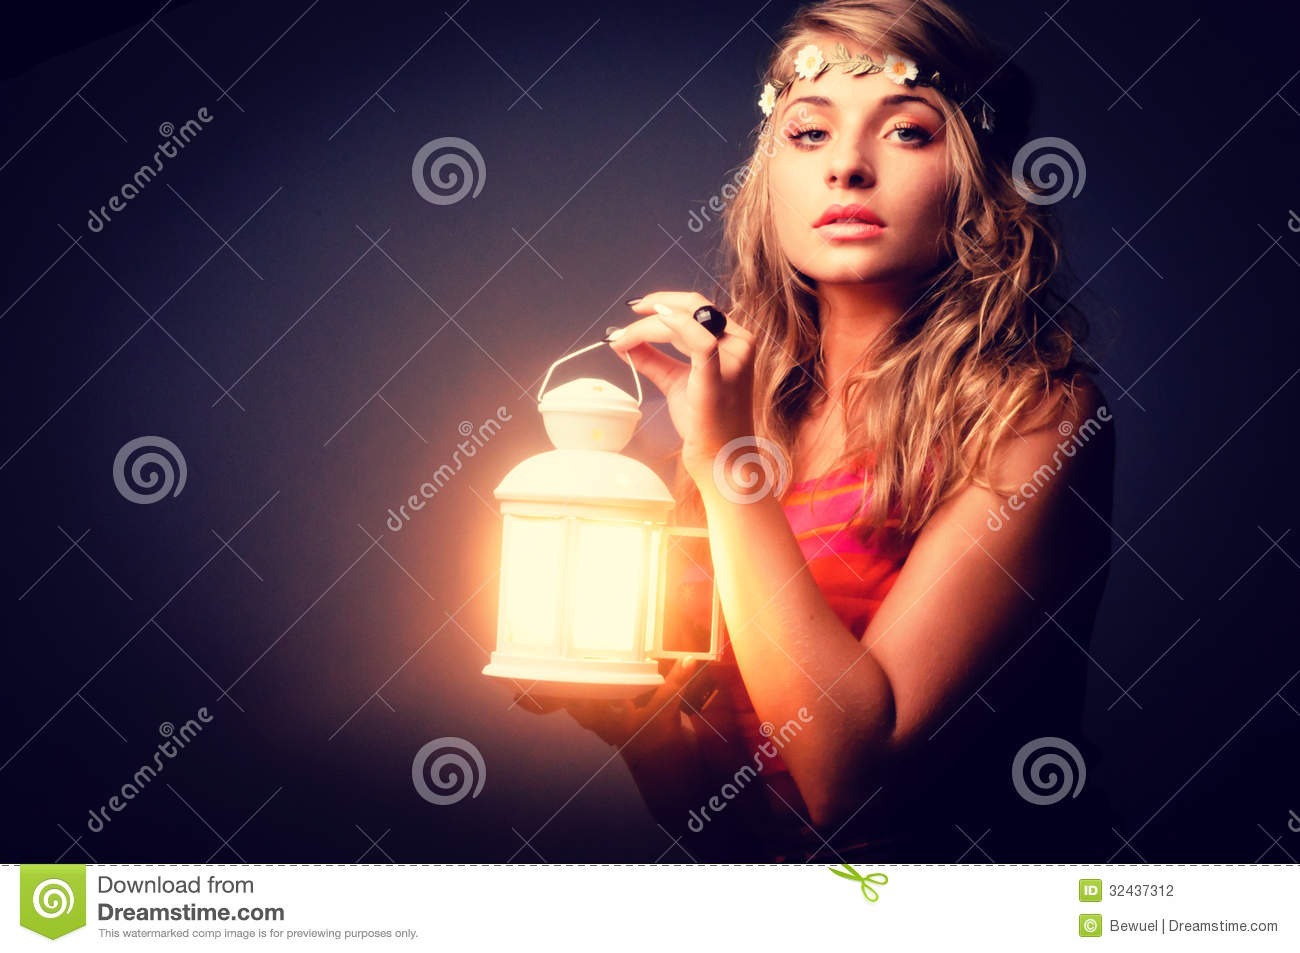 Beautiful Girl With Lantern Seeking Stock Photo - Image of looking ... for Girl Holding Lamp  75tgx